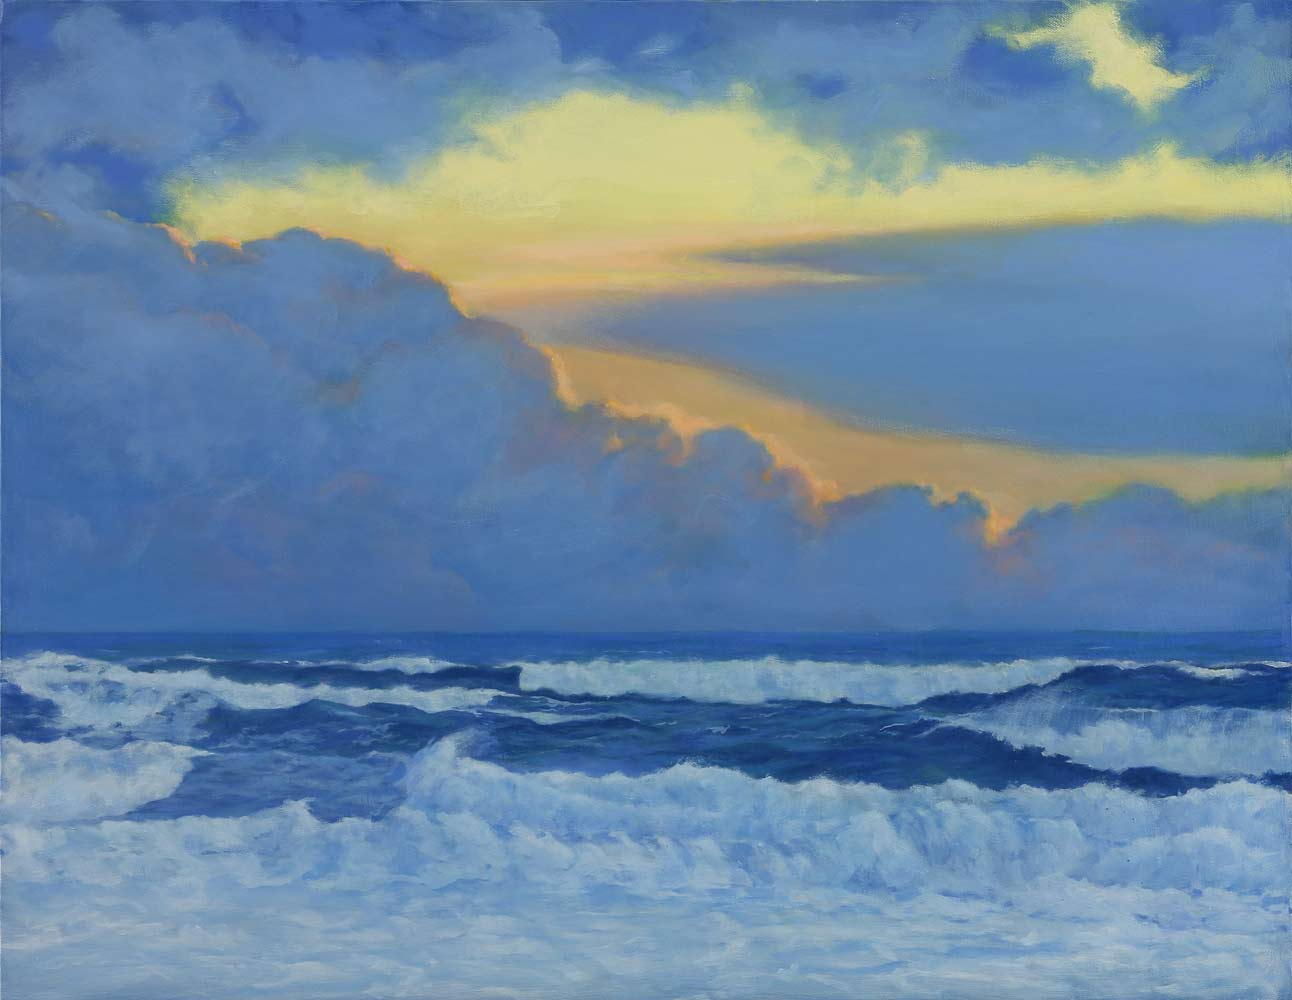 """Pescadero Sunset, oil painting by Jim Promessi, 24 x 30"""""""